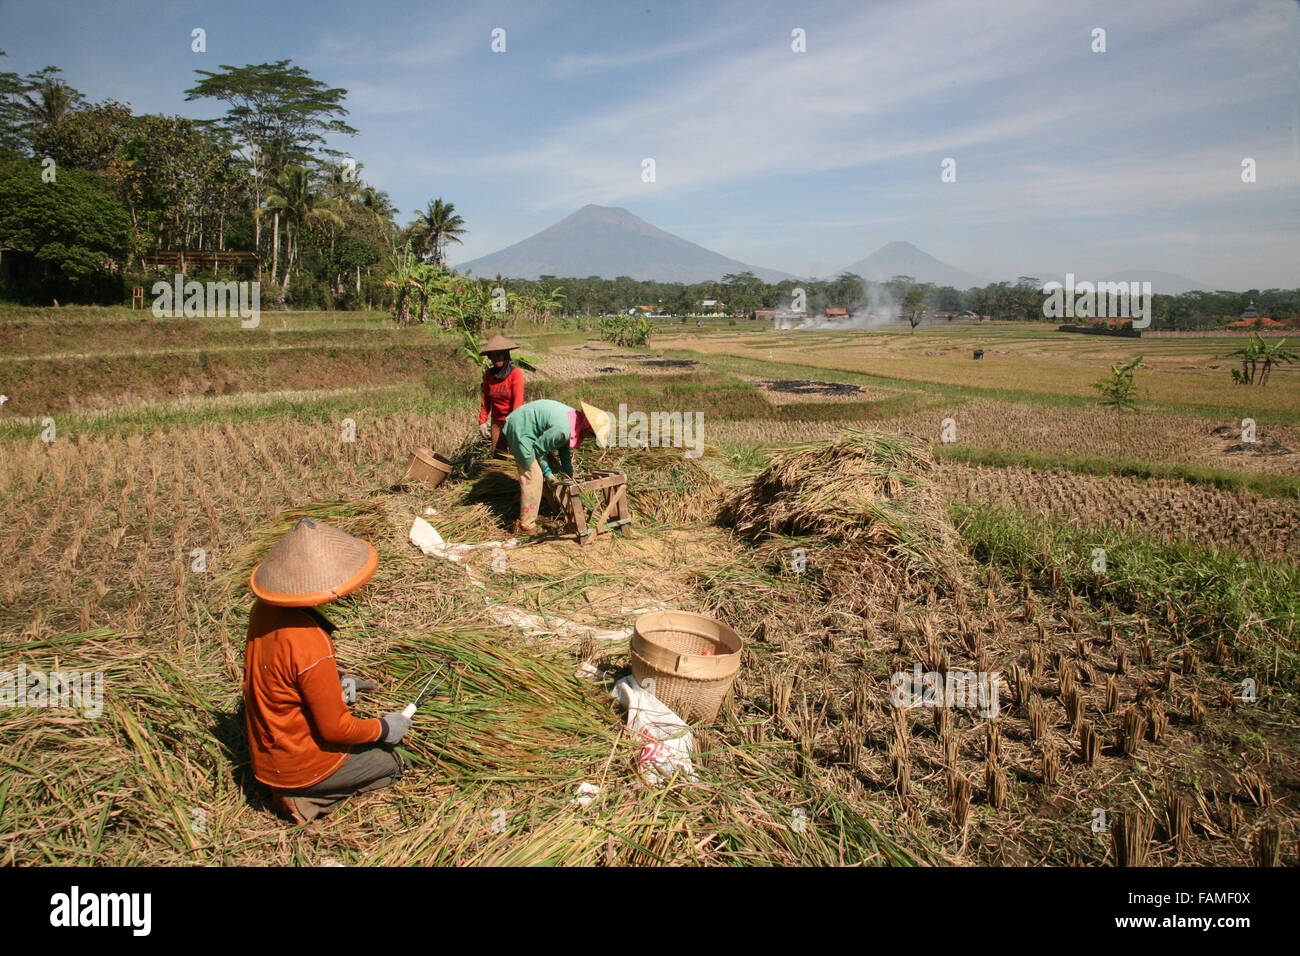 Indonesia Central Java Magelang The rice harvest on the plains between the many volcanoes of the area.  Adrian Baker - Stock Image